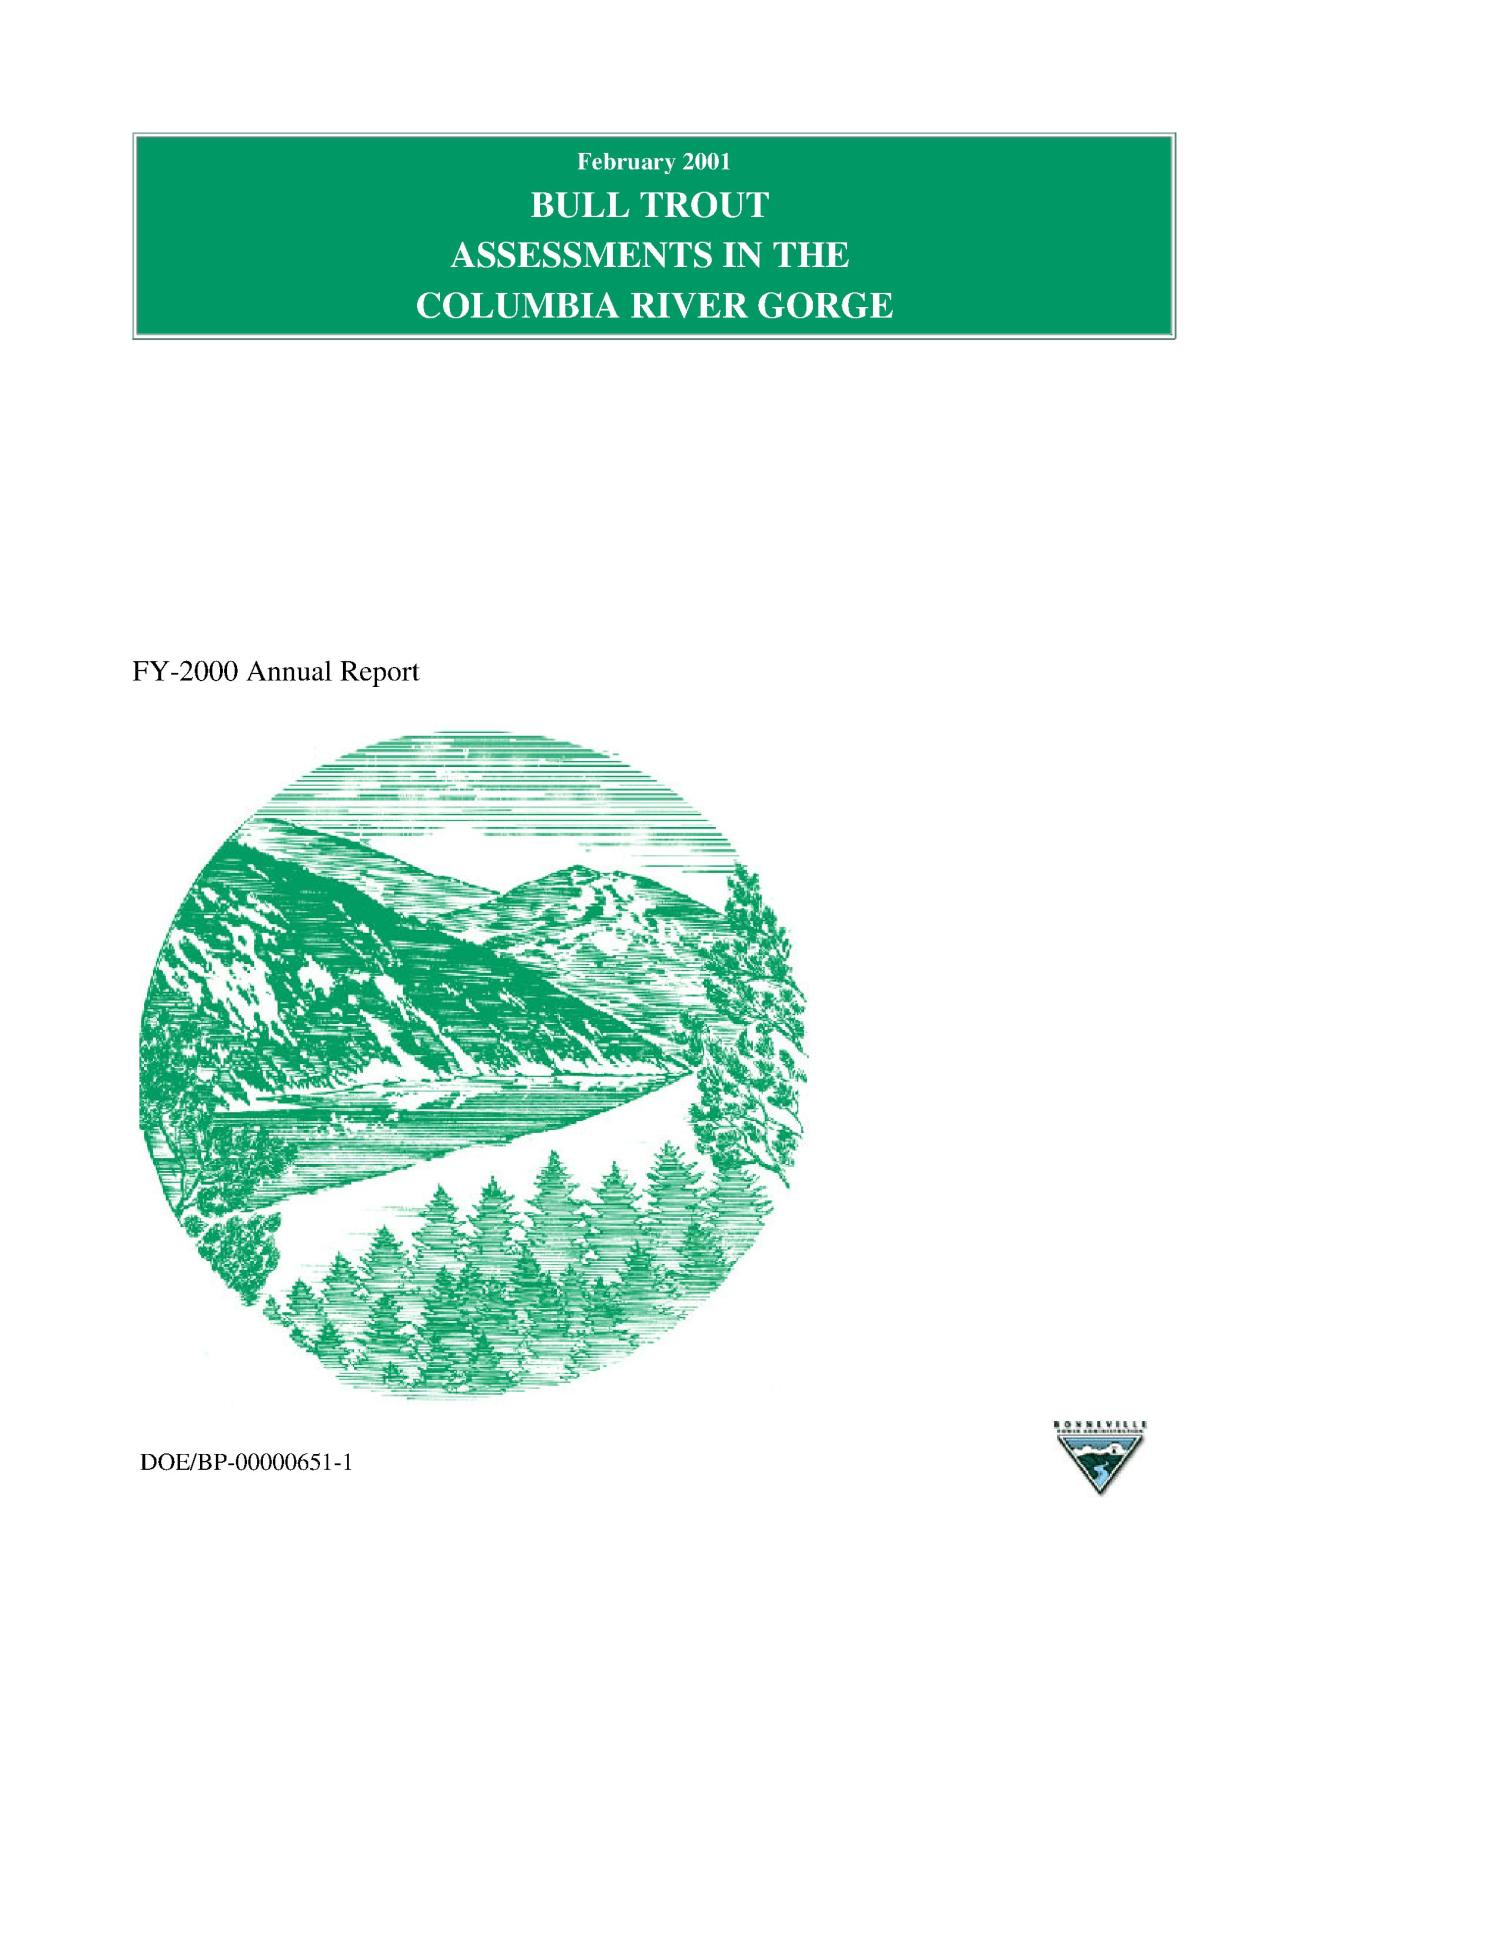 Bull Trout Population Assessment in the Columbia River Gorge : Annual Report 2000.                                                                                                      [Sequence #]: 1 of 85